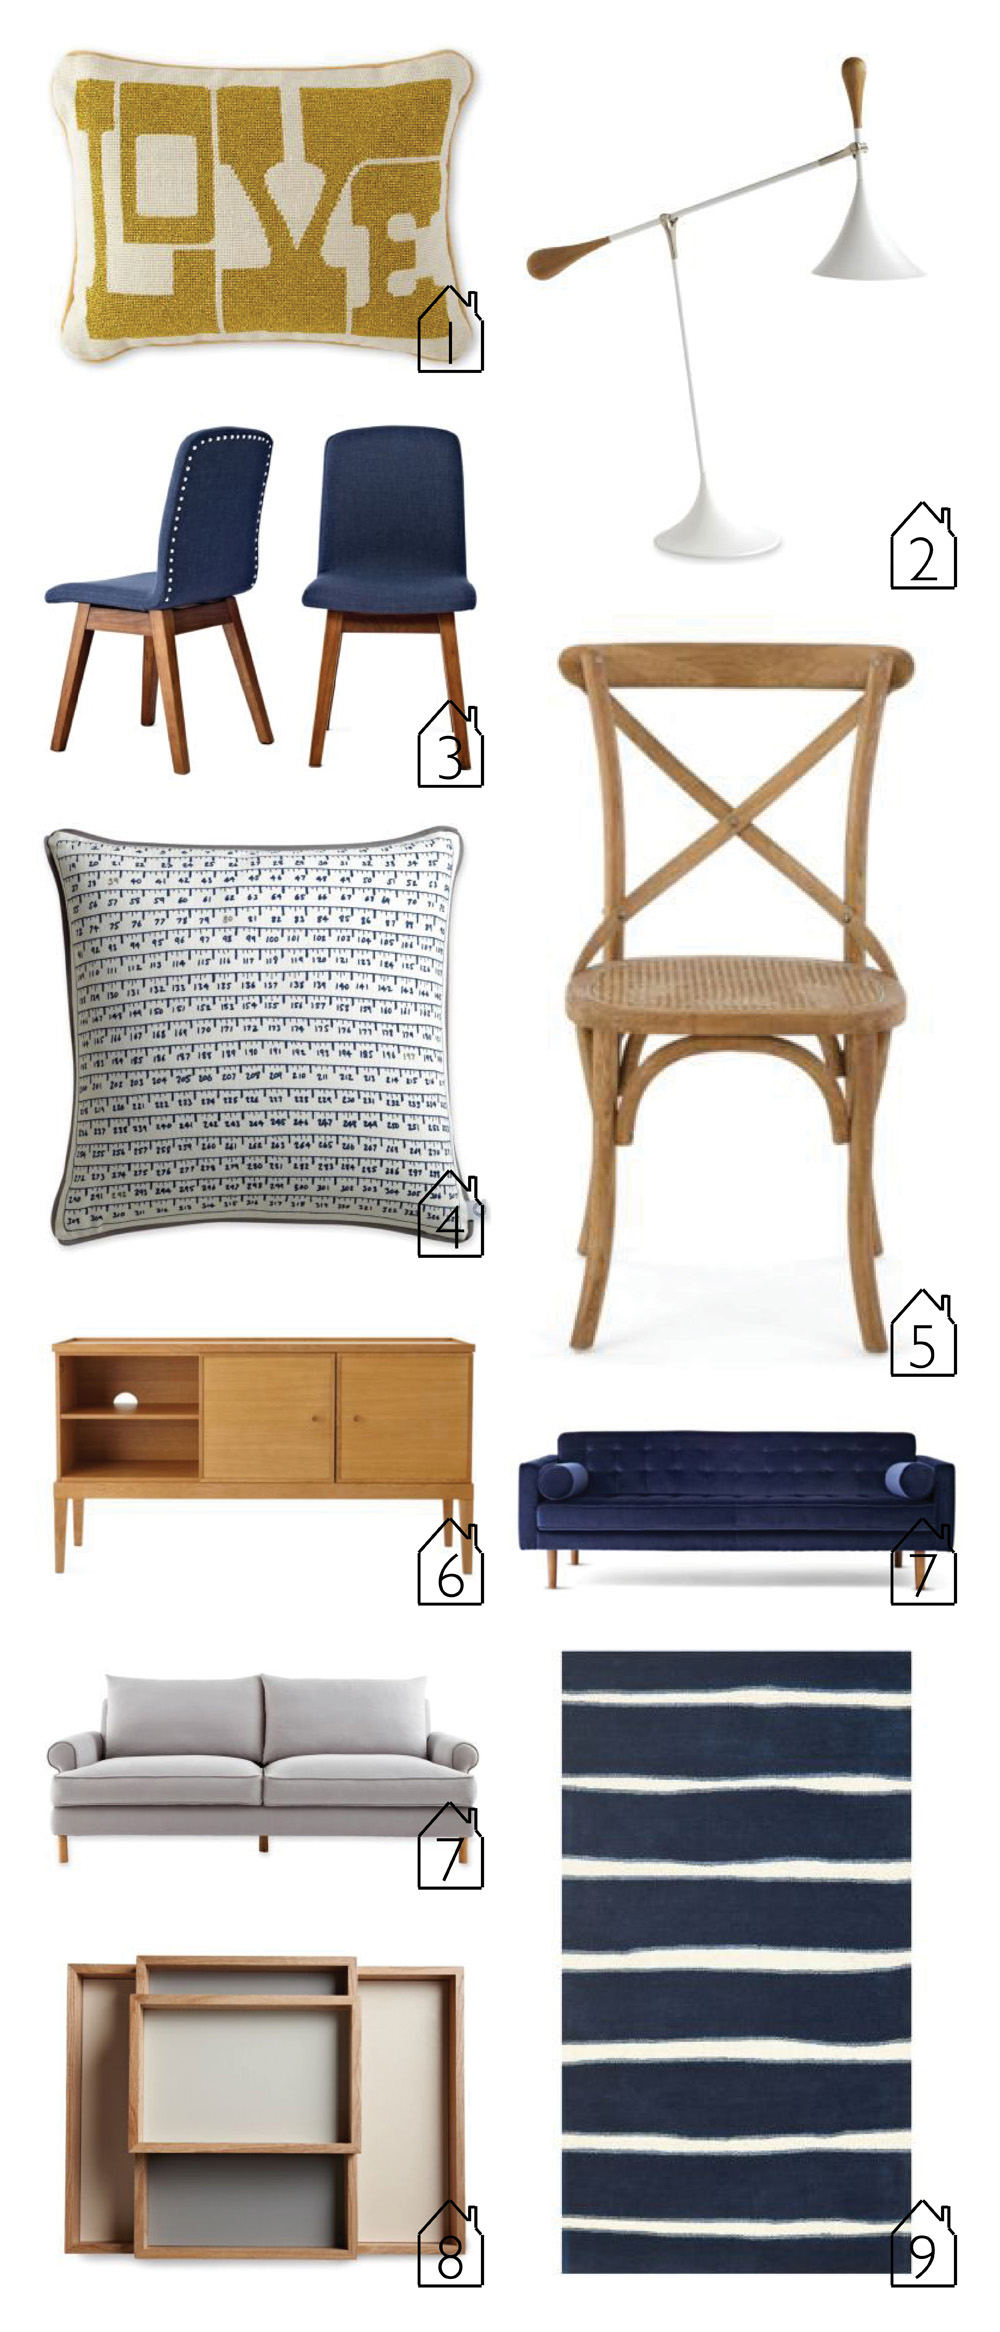 1.  Love Pillow  2.  Beep Table Lamp  3.  Bleecker Side Chair  4.  Measuring Tape Pillow  5.  Marie Side Chairs  6.  Hyale Sideboard  7.  Brooke Sofa  8.  Stacking Trays  9.  Chalk Stripe Rug